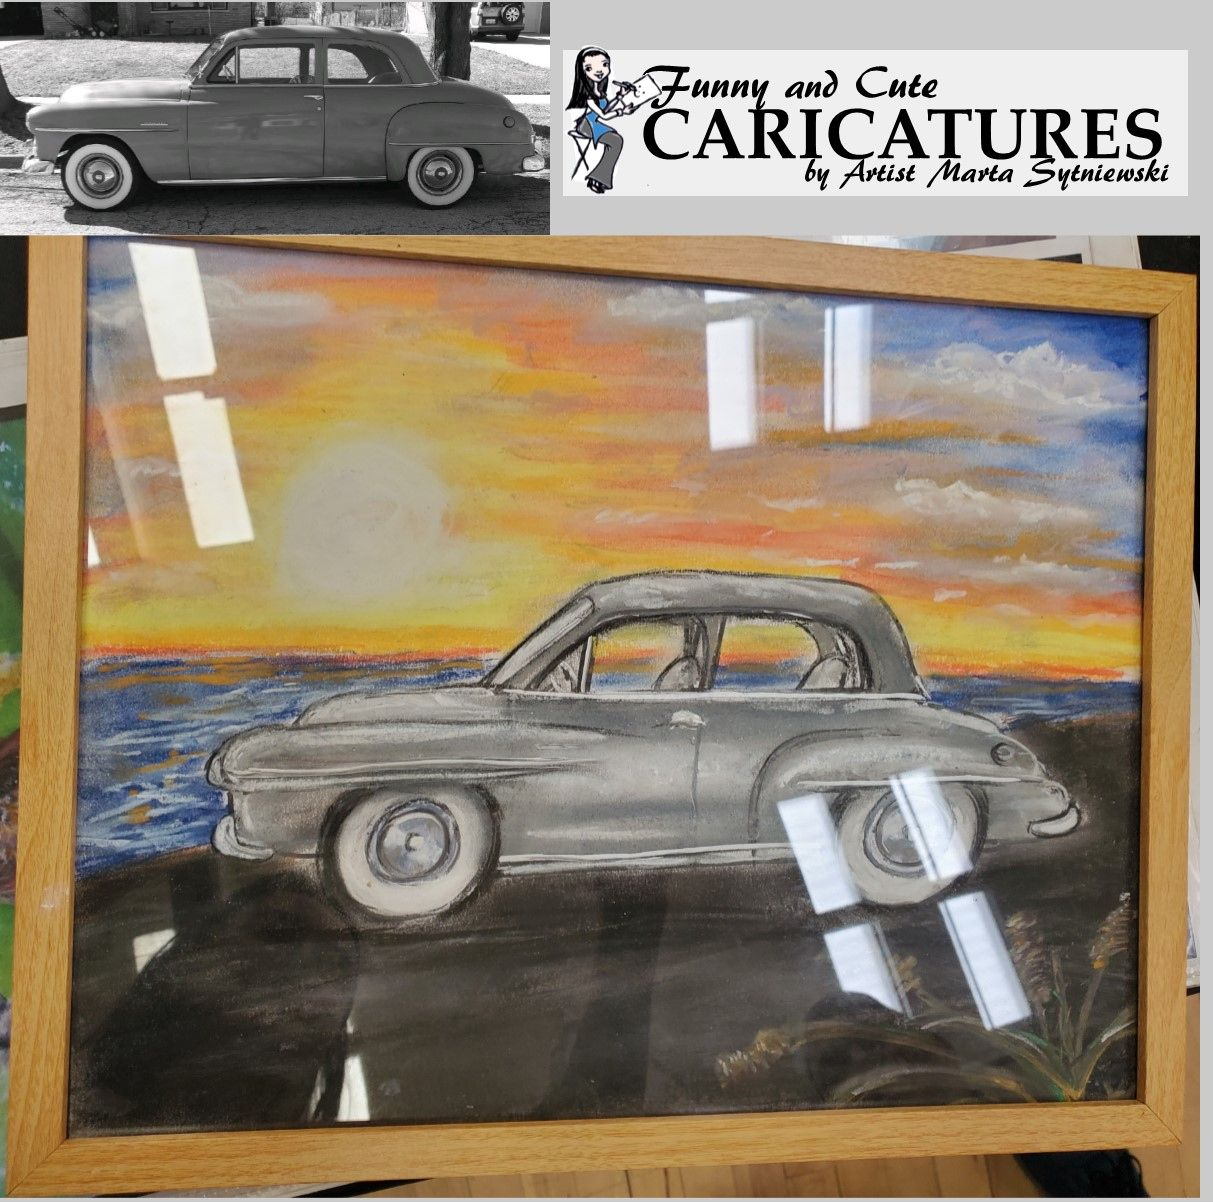 Do you have a car that you love? Get a handmade pastel drawing of your vehicle by artist Marta Sytniewski call 773-574-7767 or email FunnyAndCuteCaricatures@gmail.com #Carlove #Lovecar #Carart #Carcaricature #Cardrawing #Pasteldrawing #Caricaturecar #MartaSytniewski #FunnyAndCuteCaricature